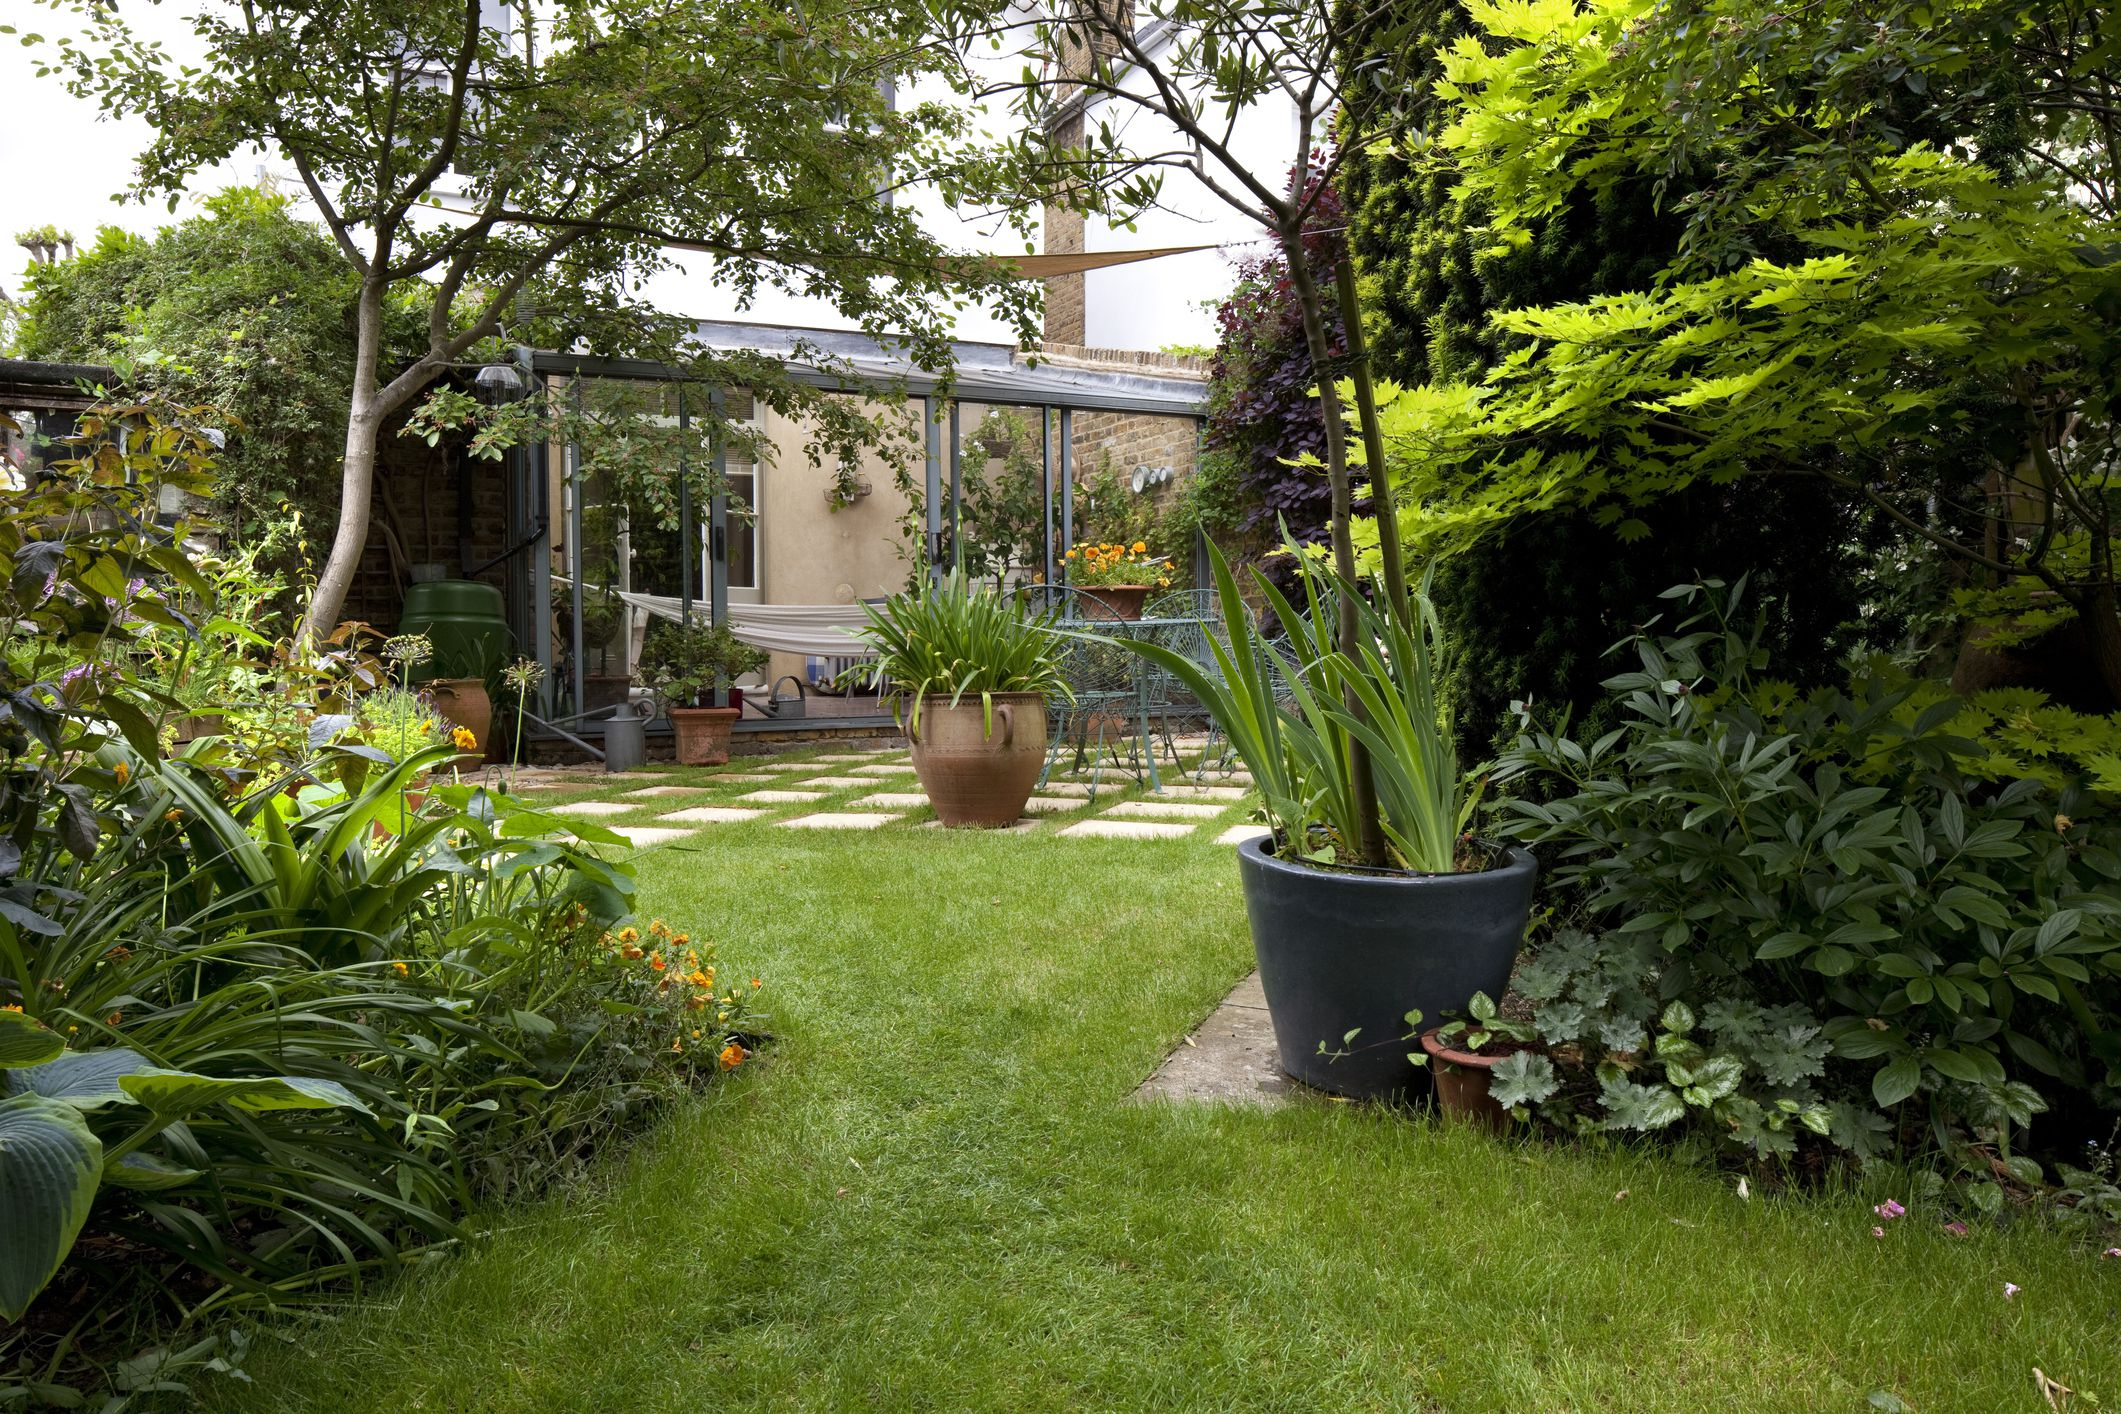 garden design ideas suburban garden and lawn, kingston upon thames, england, uk RDNGGRH